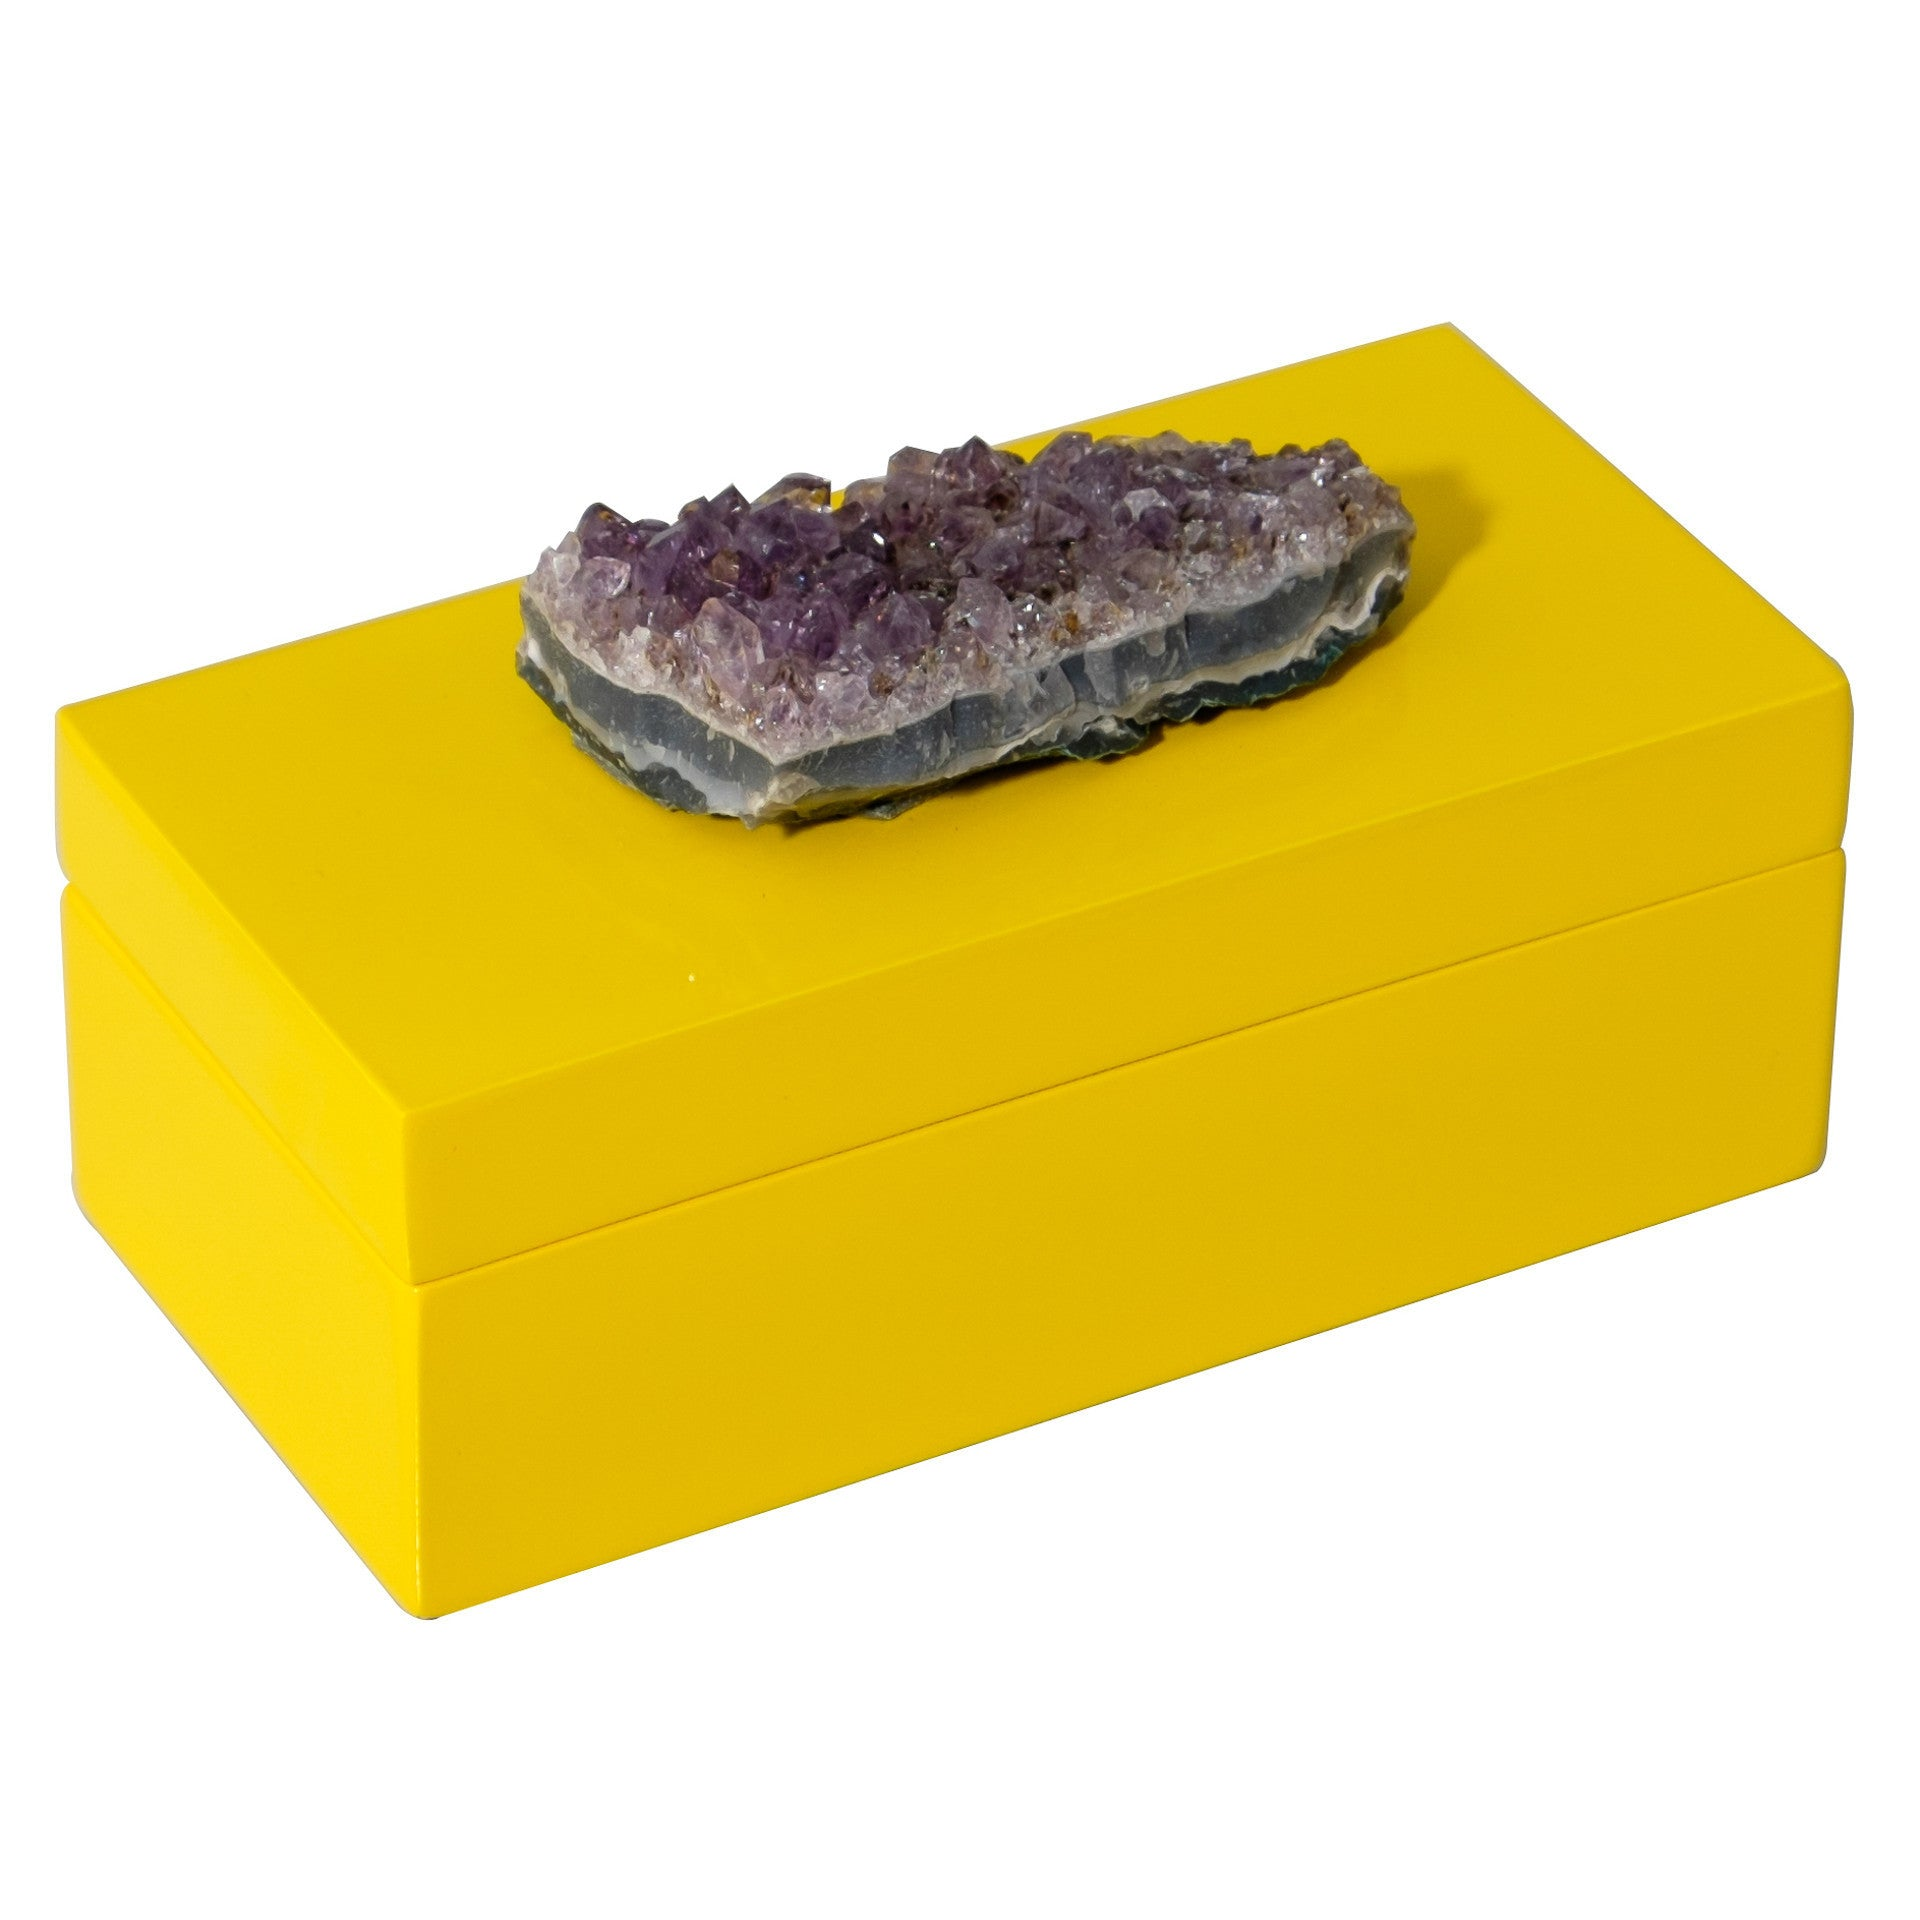 Medium Yellow Lacquer Box with Amethyst